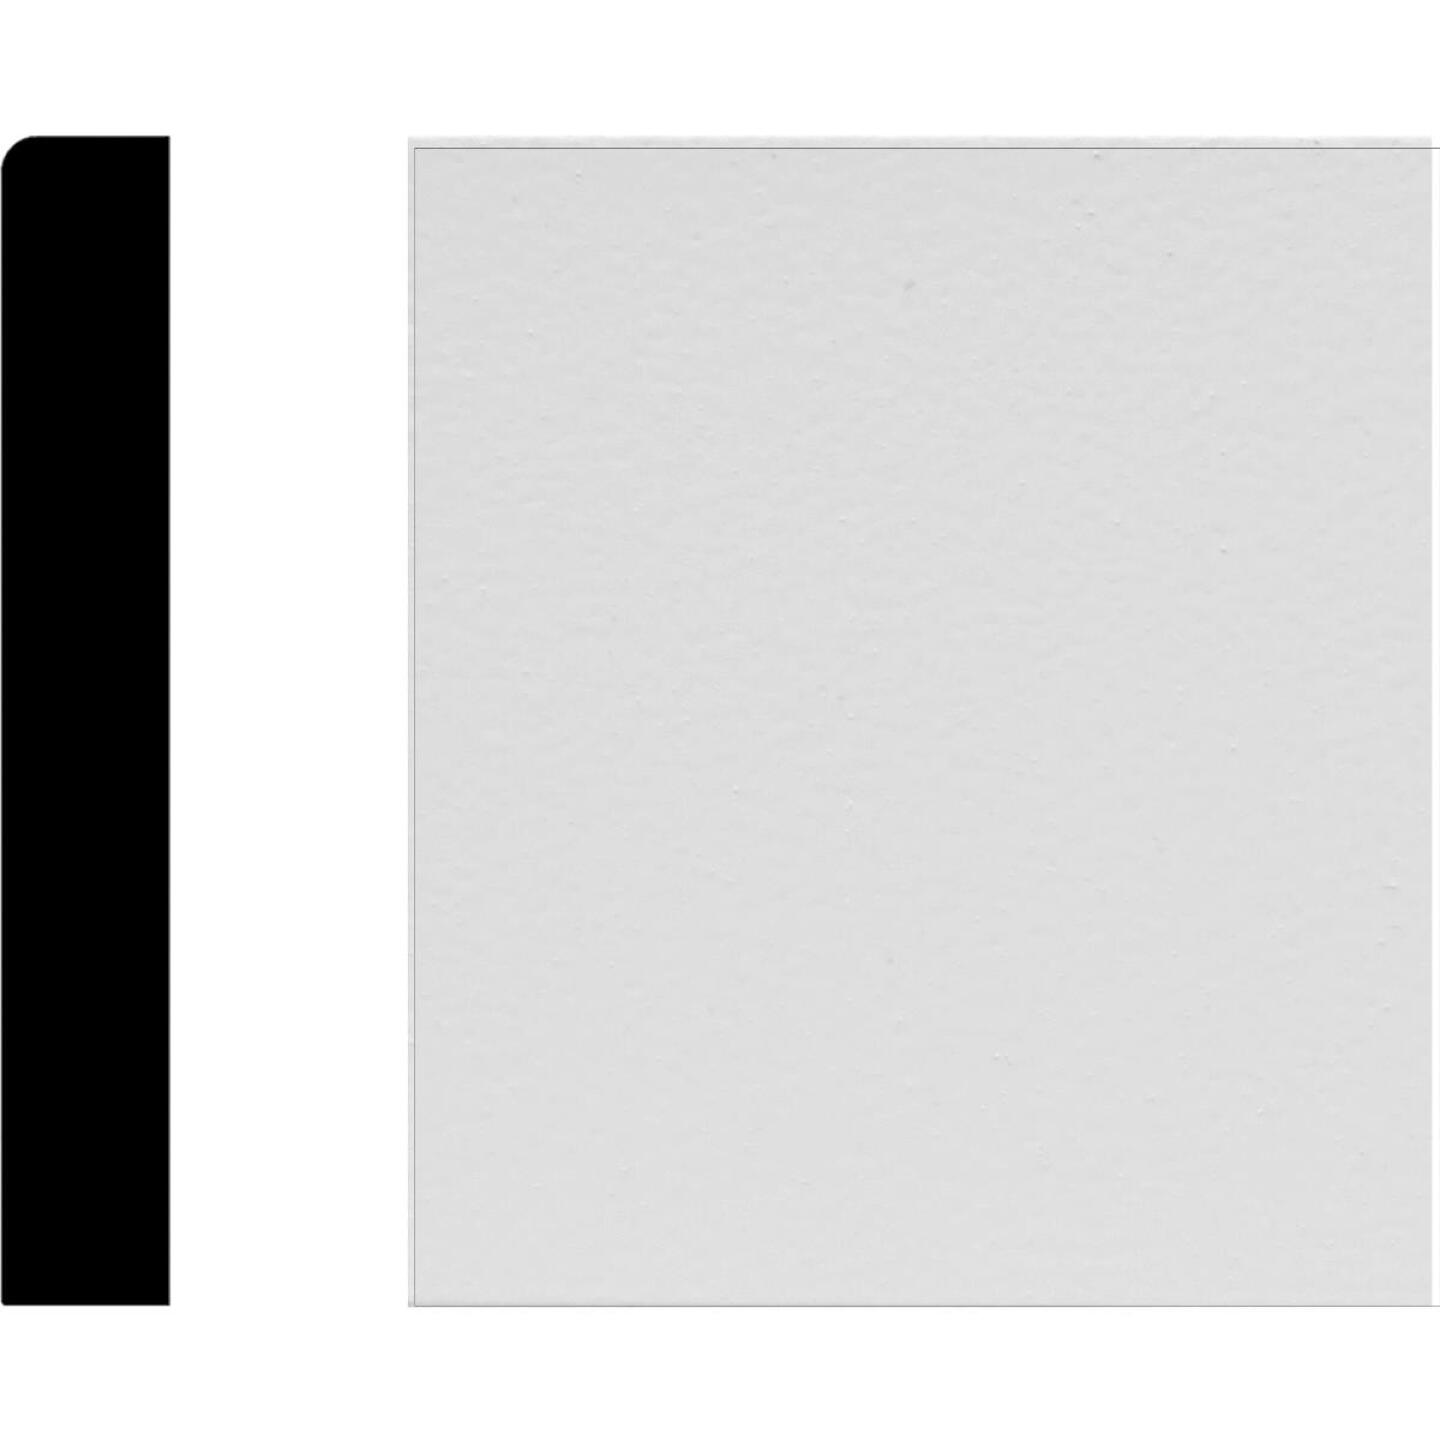 House of Fara 1/2 In. W. x 3-1/2 In. H. x 8 Ft. L. White MDF Mullion Base Molding Image 1